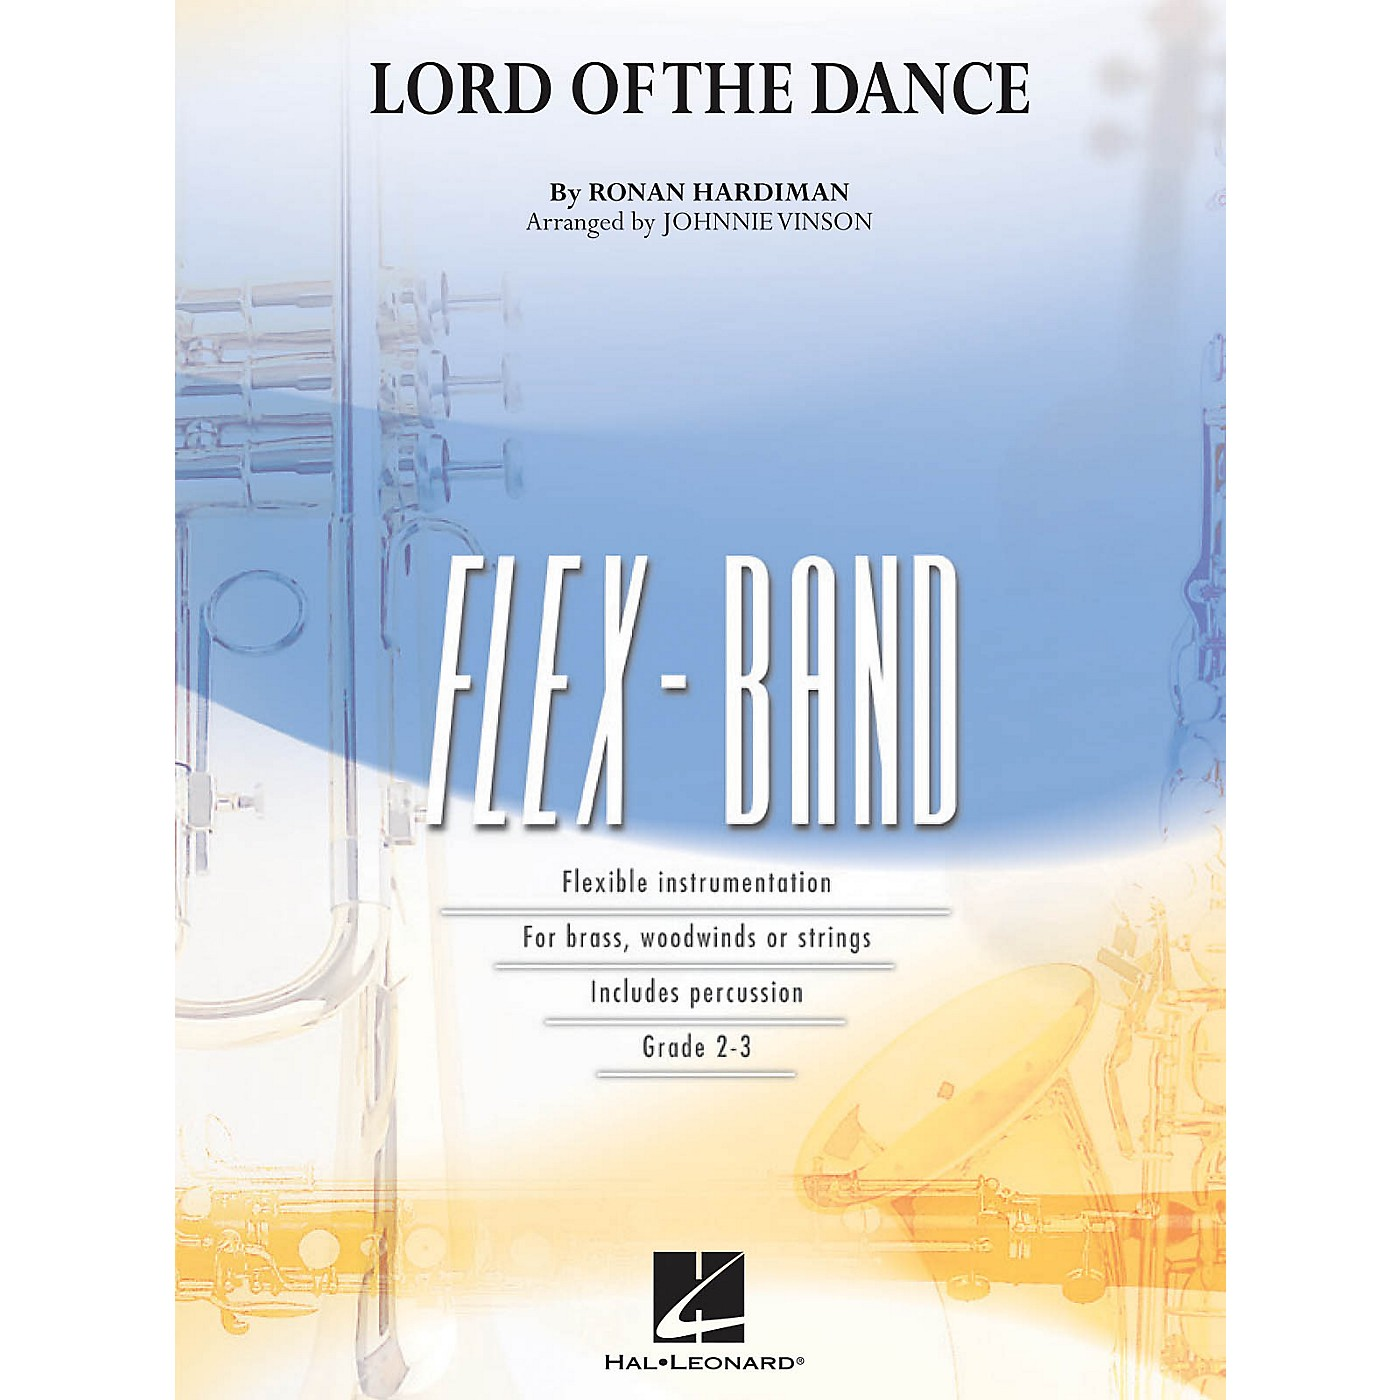 Hal Leonard The Lord of the Dance Concert Band Level 2-3 Arranged by Johnnie Vinson thumbnail